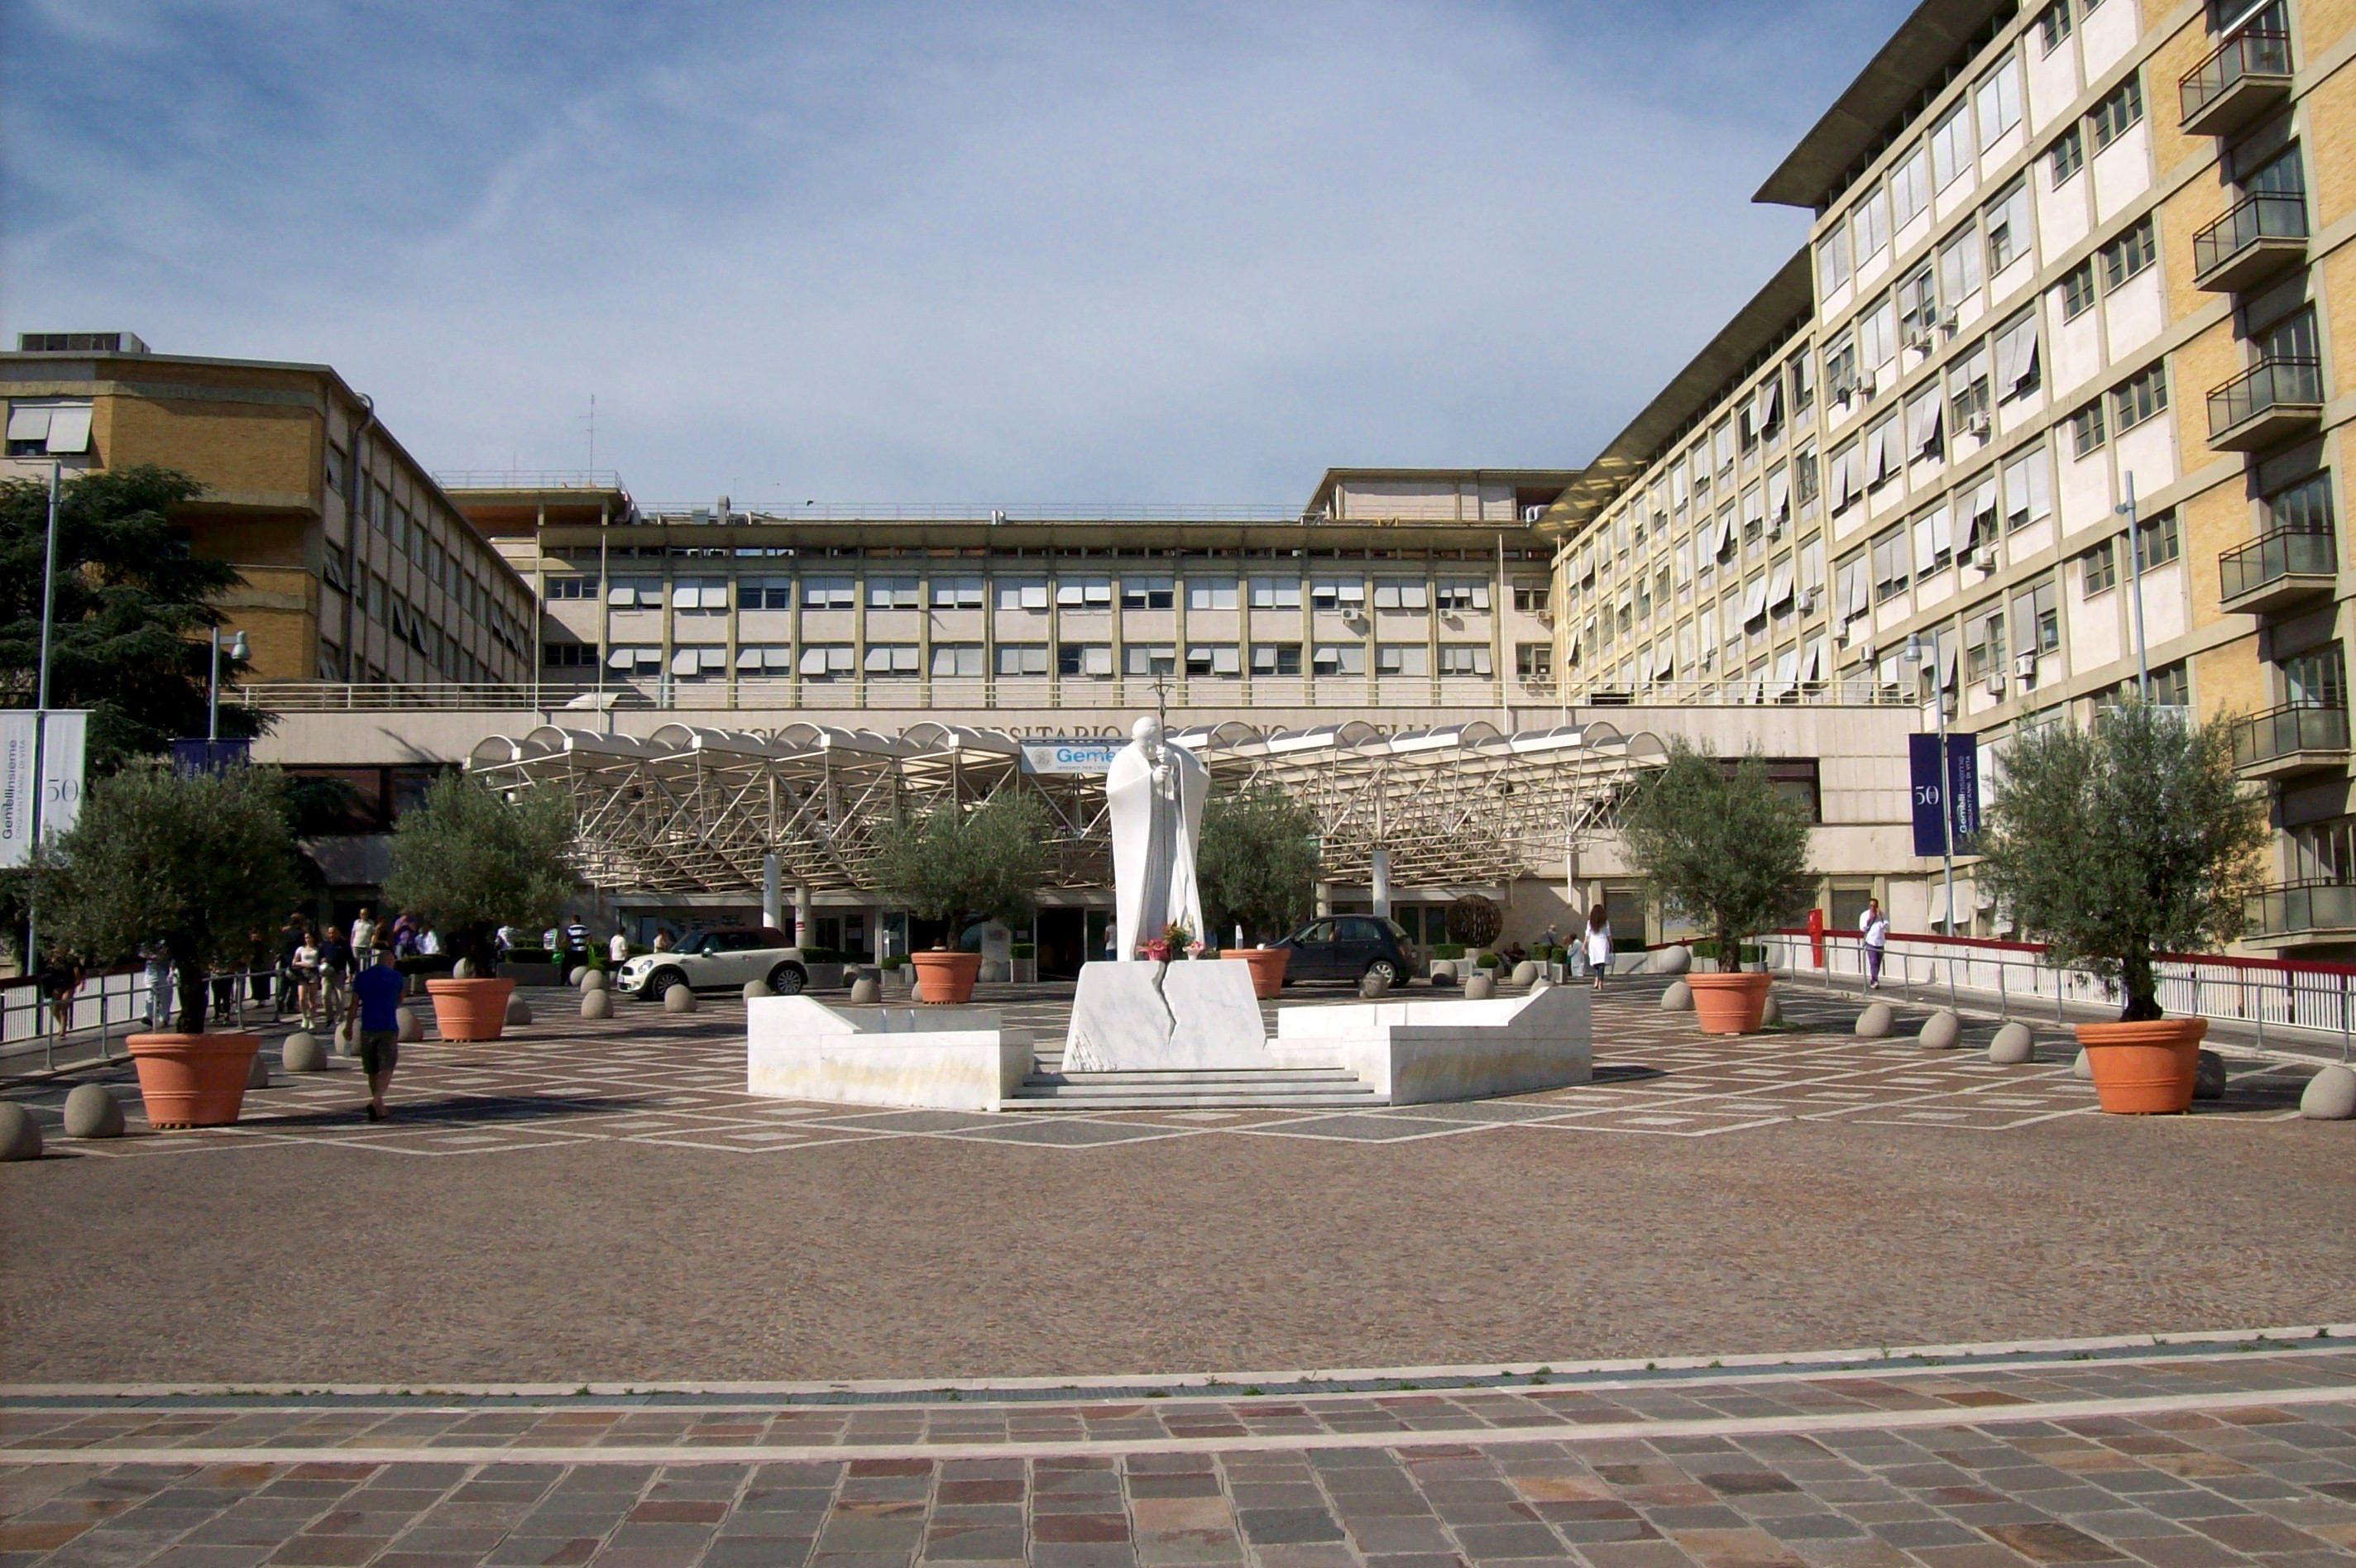 "University Policlinic ""Agostino Gemelli"" in Rome"